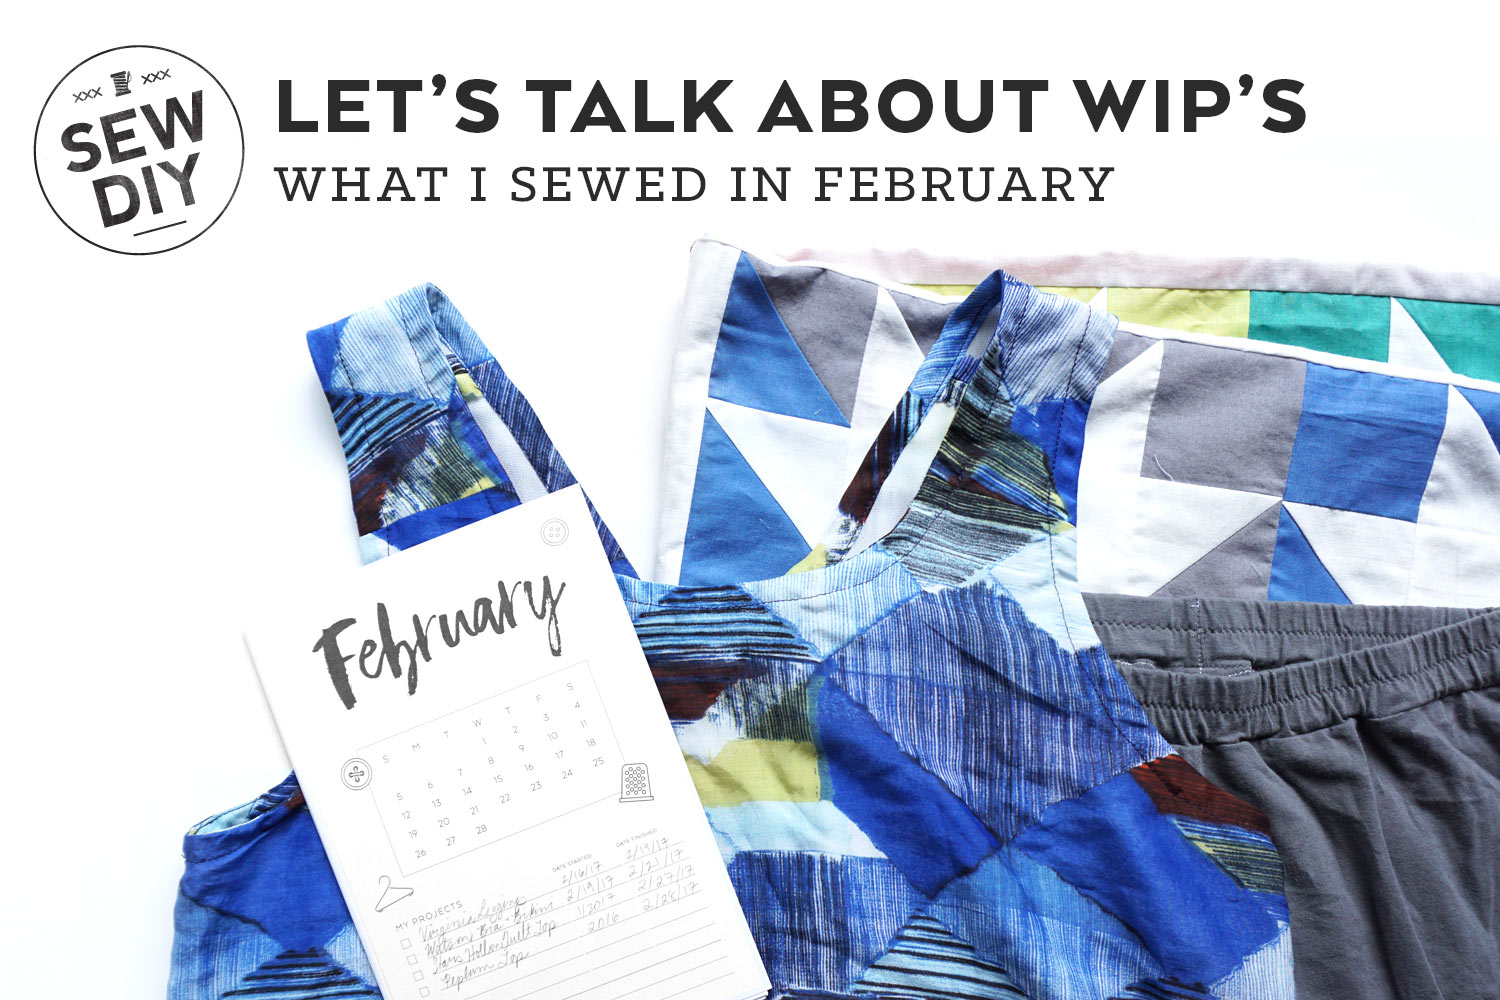 Let's Talk About WIPs –What I Sewed in February | Sew DIY